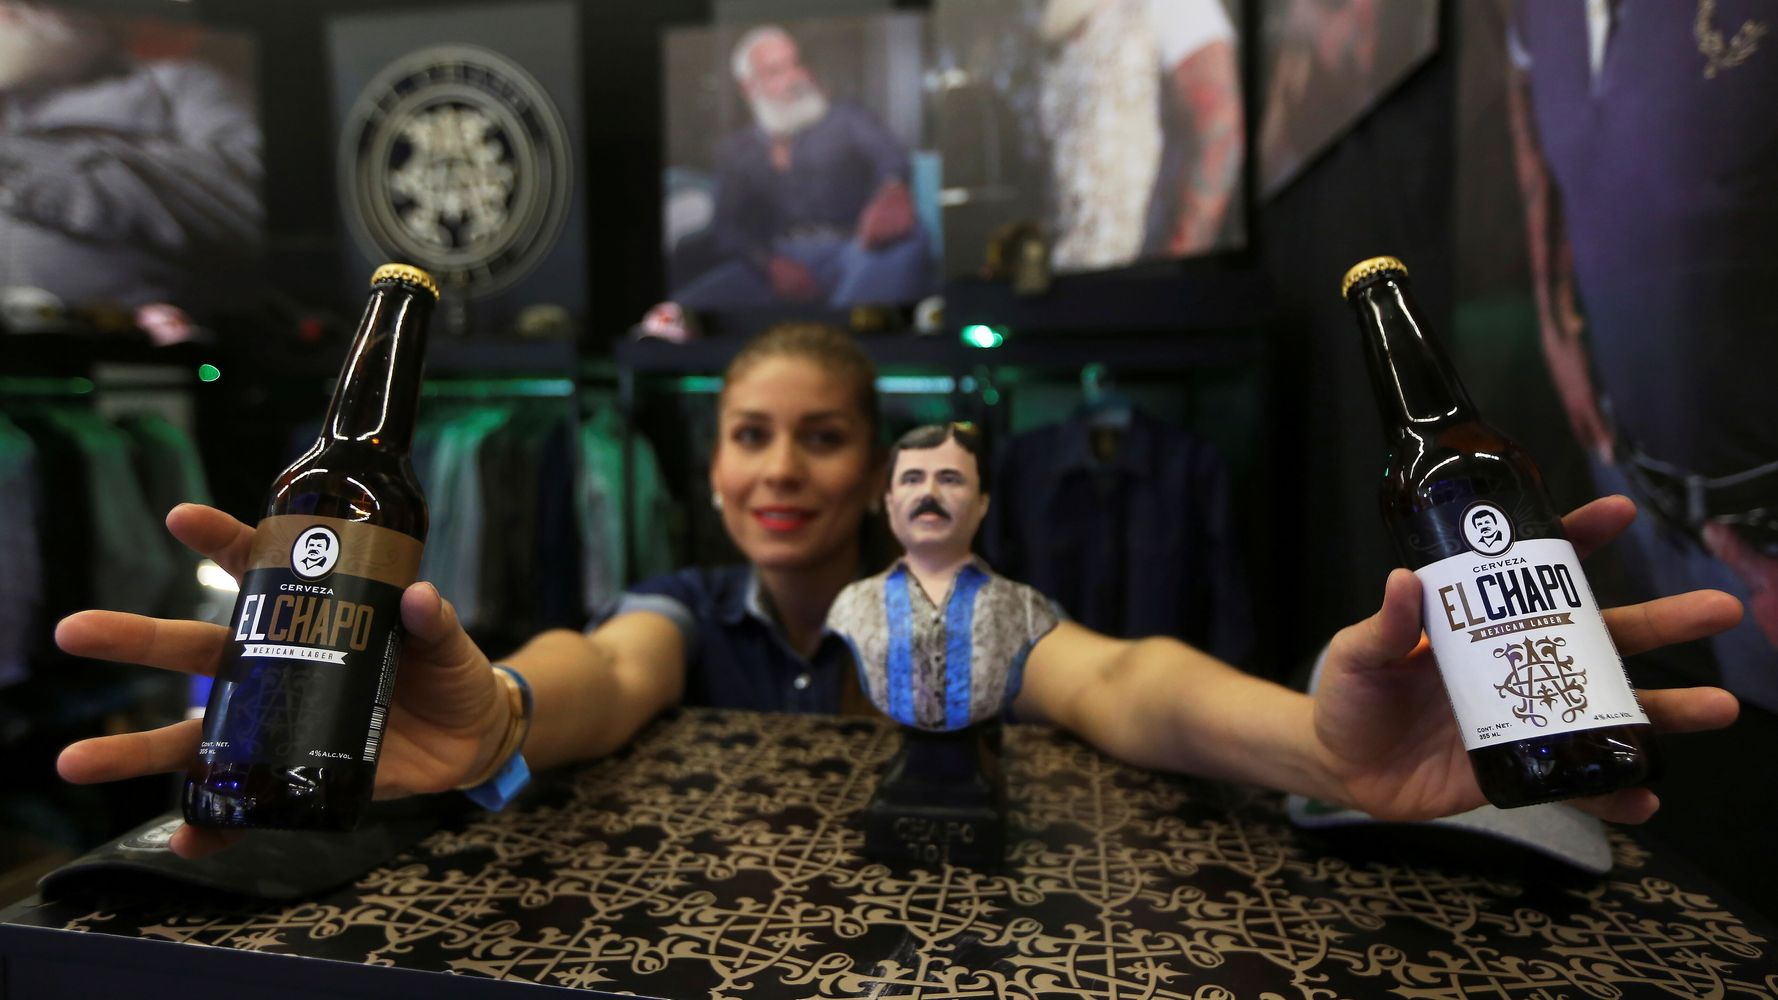 Mexican Drug Kingpin's Daughter Launches 'El Chapo' Beer